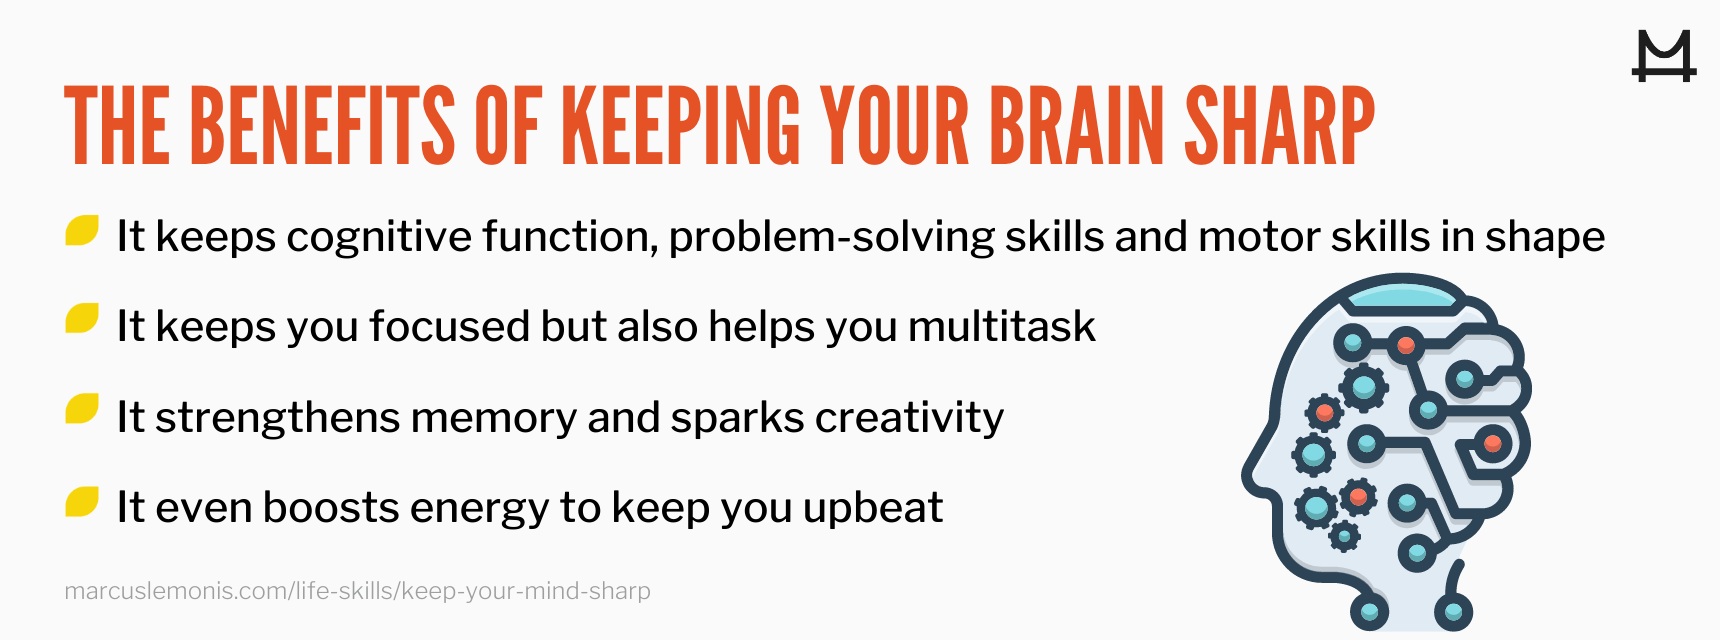 List of benefits of keeping your mind sharp.